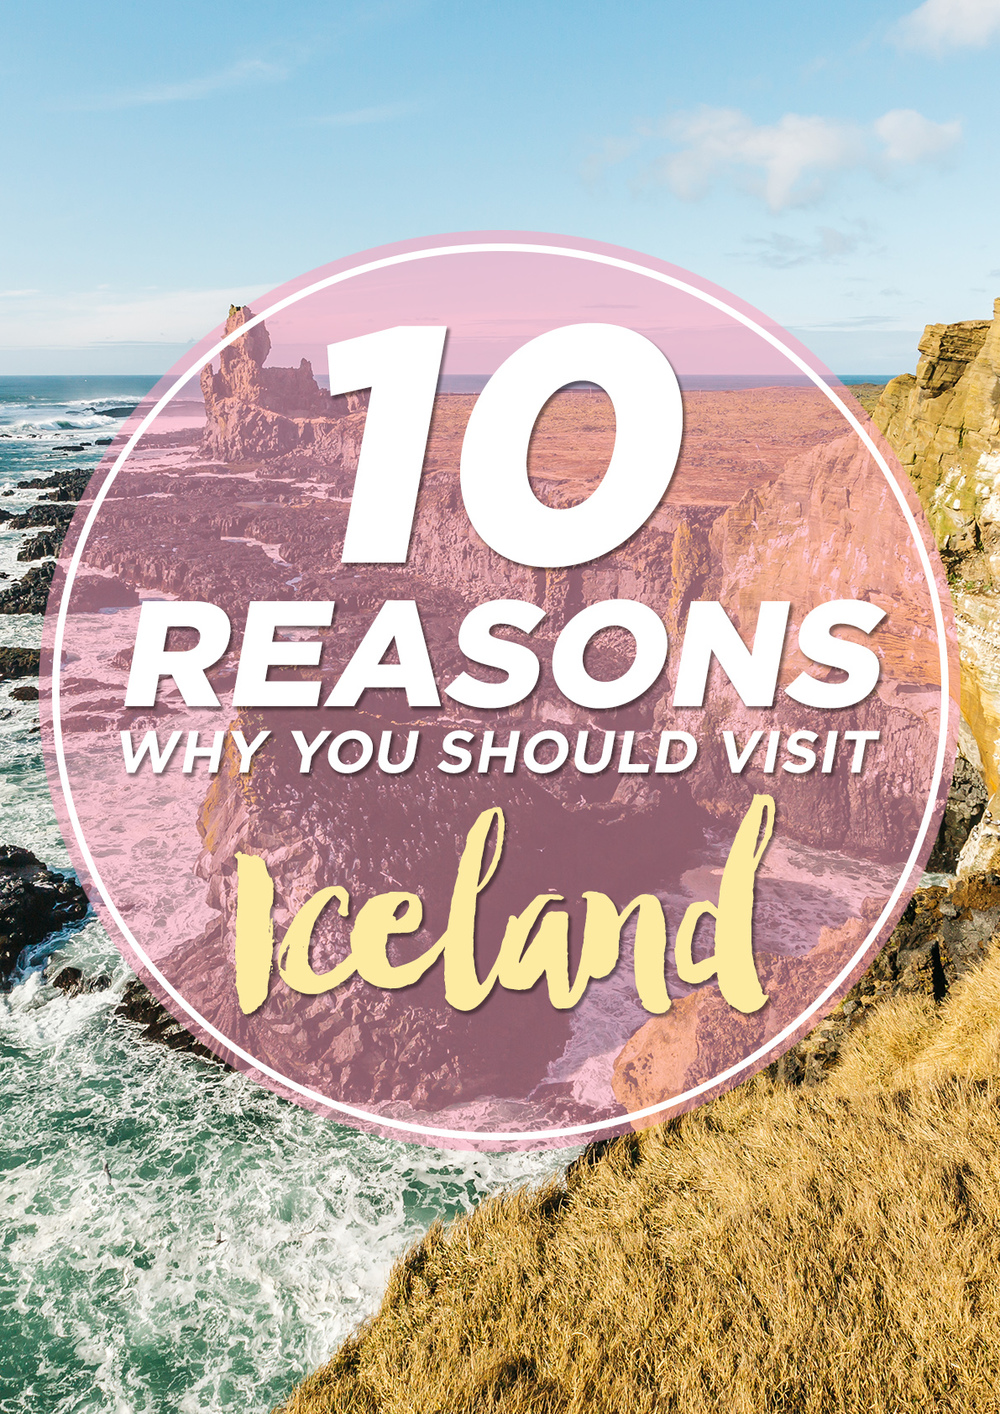 Iceland 10 Reasons Pinterest www.thetravelpockets.com